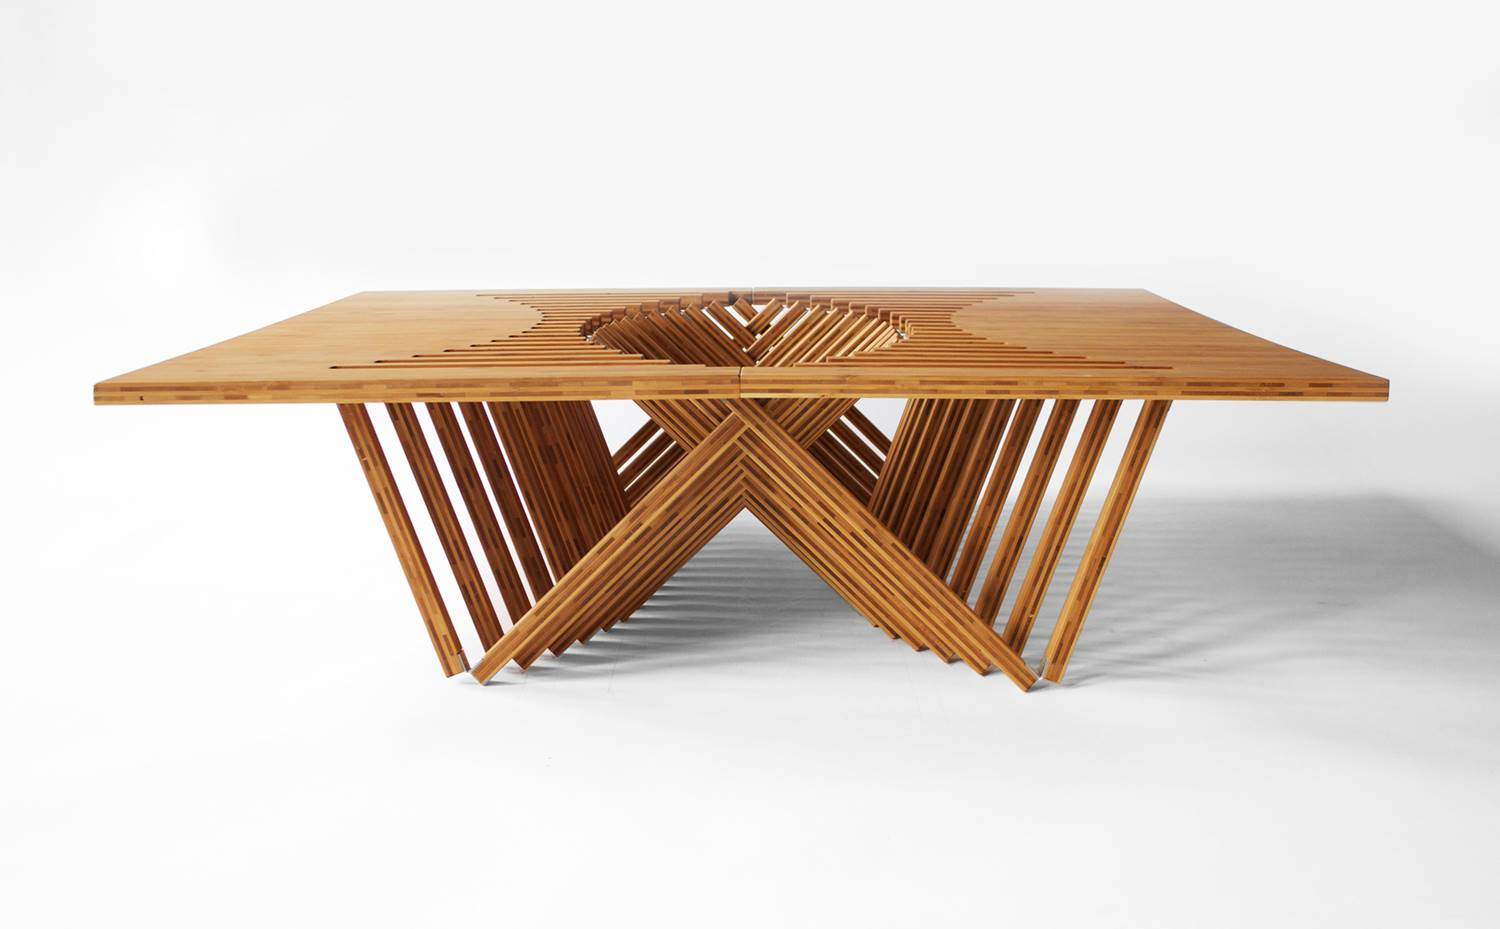 Rising Table, de Robert van Embricqs